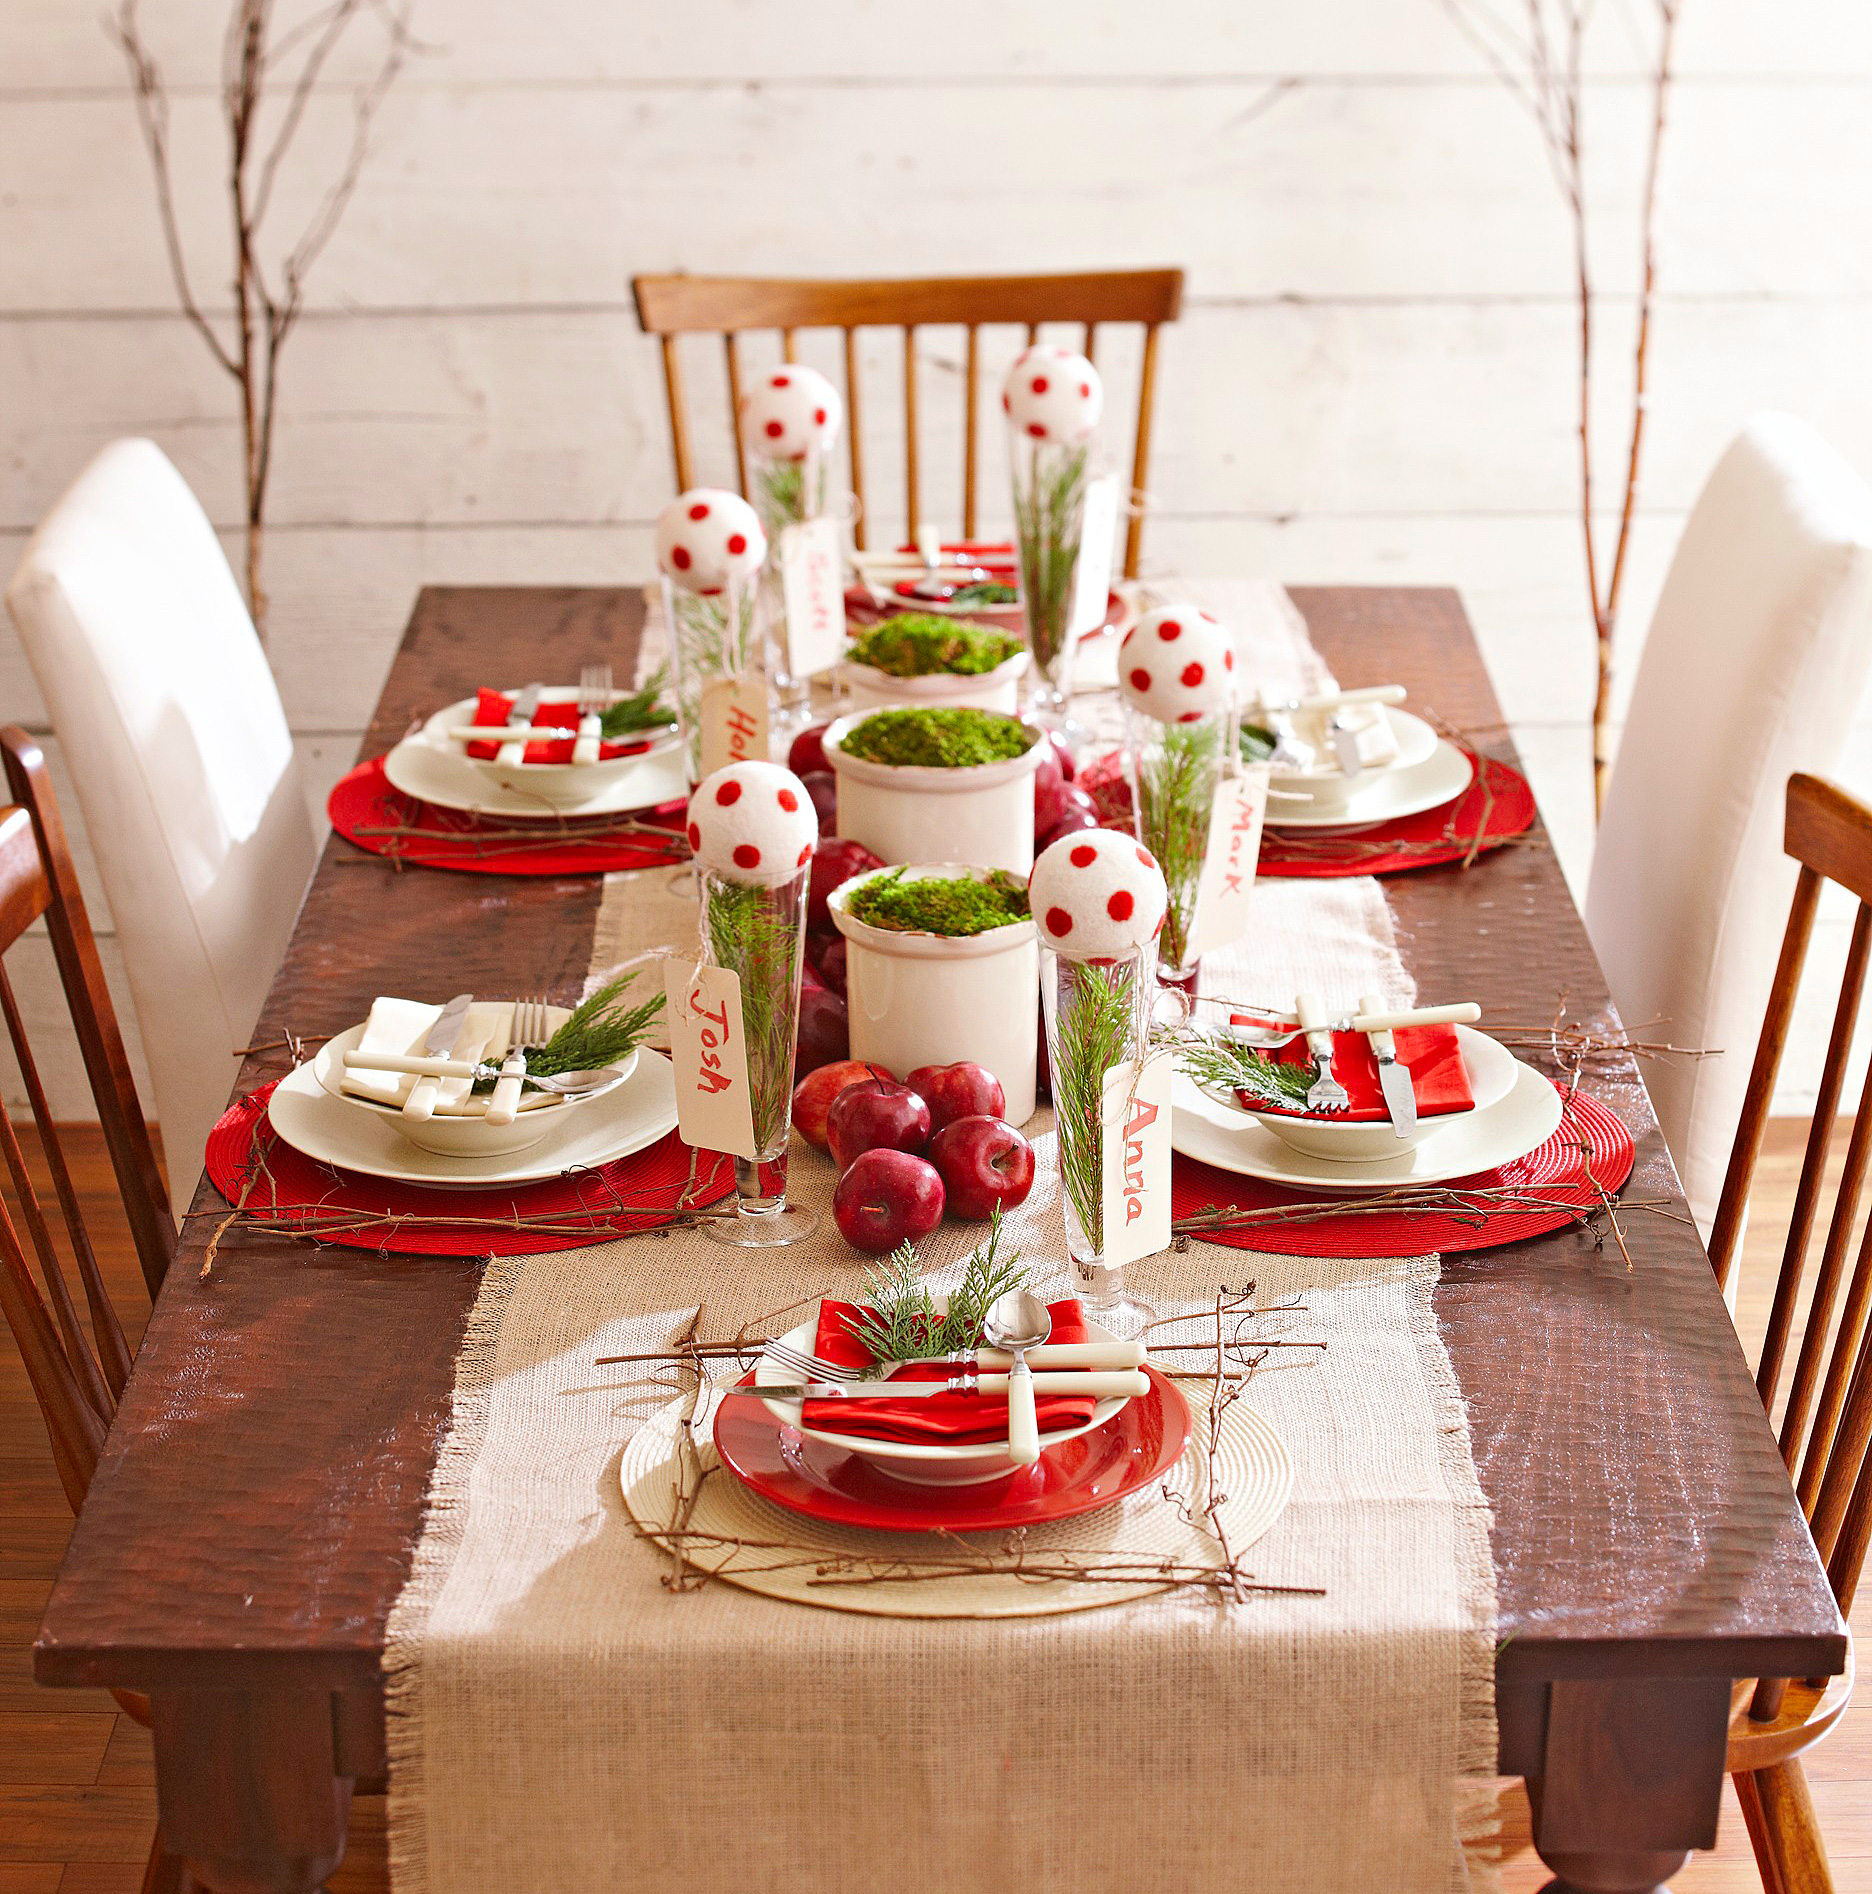 Red and green table setting